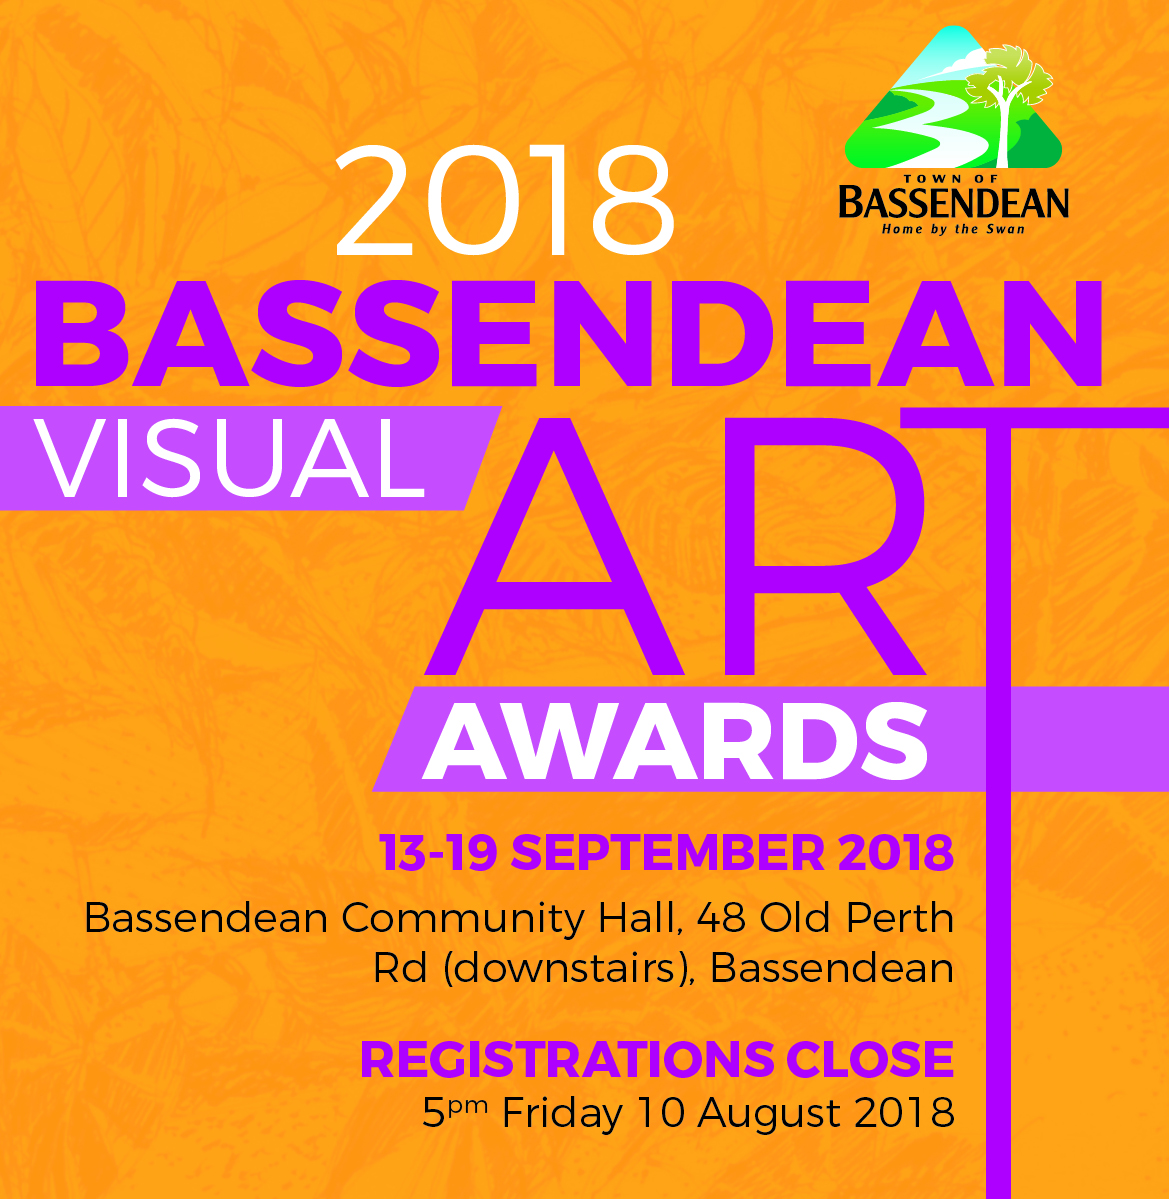 Bassendean Visual Art Awards 2018